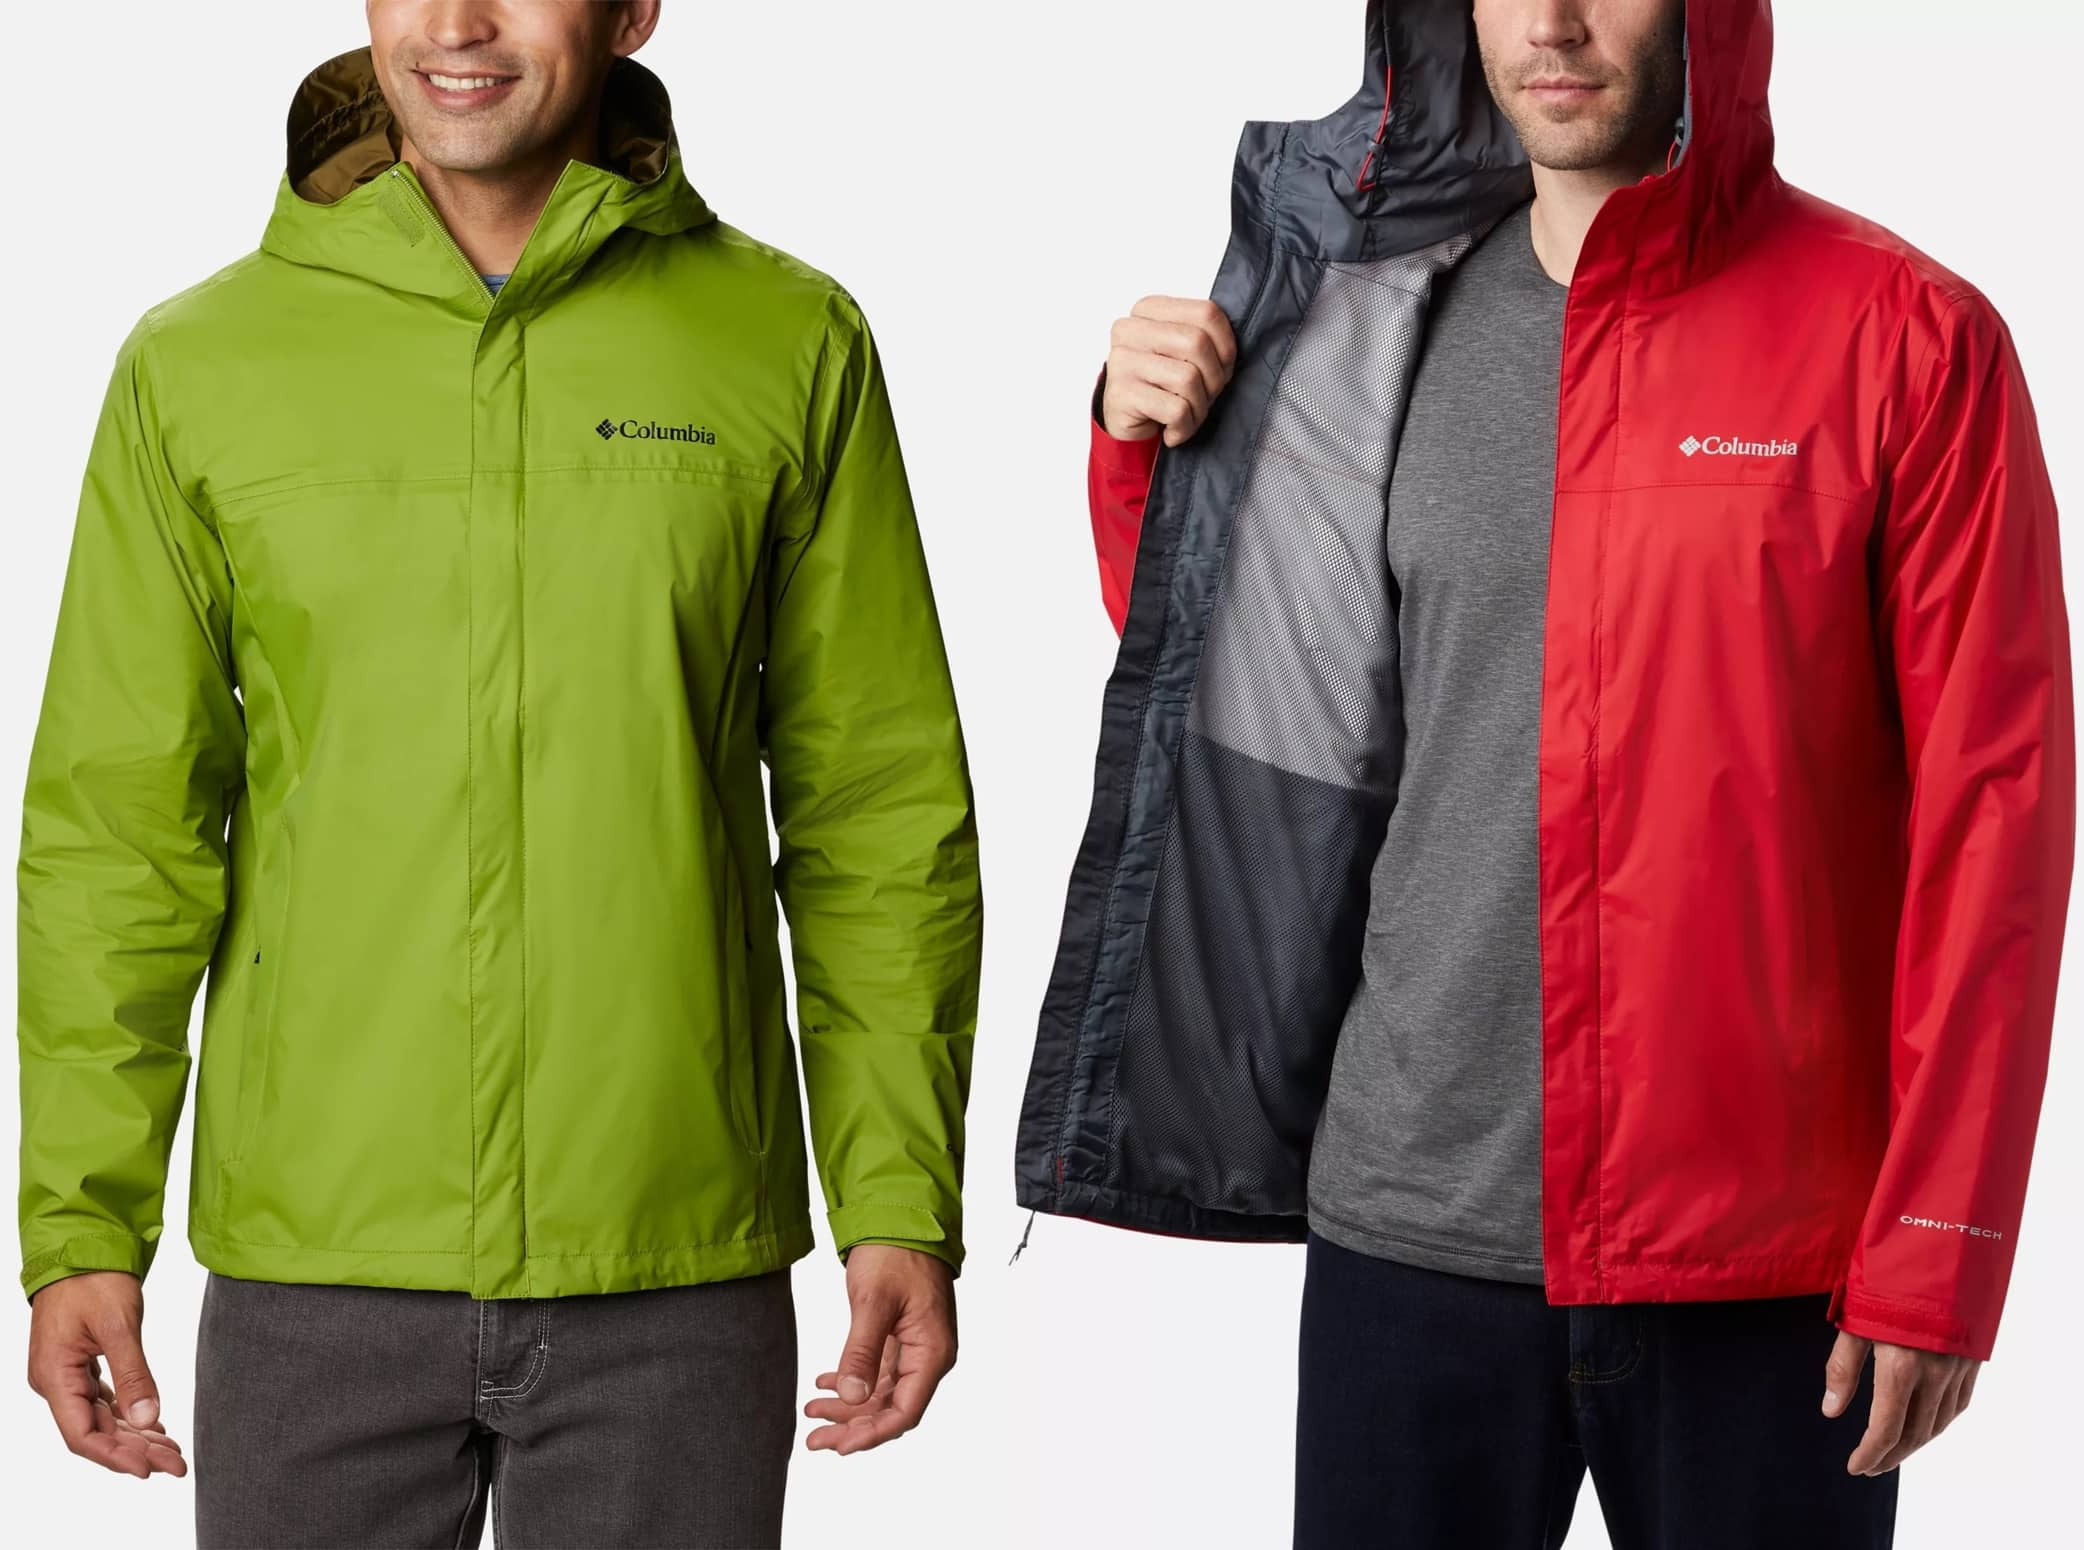 This waterproof-breathable, fully seam-sealed jacket will keep you nice and dry, even in the heaviest of rains